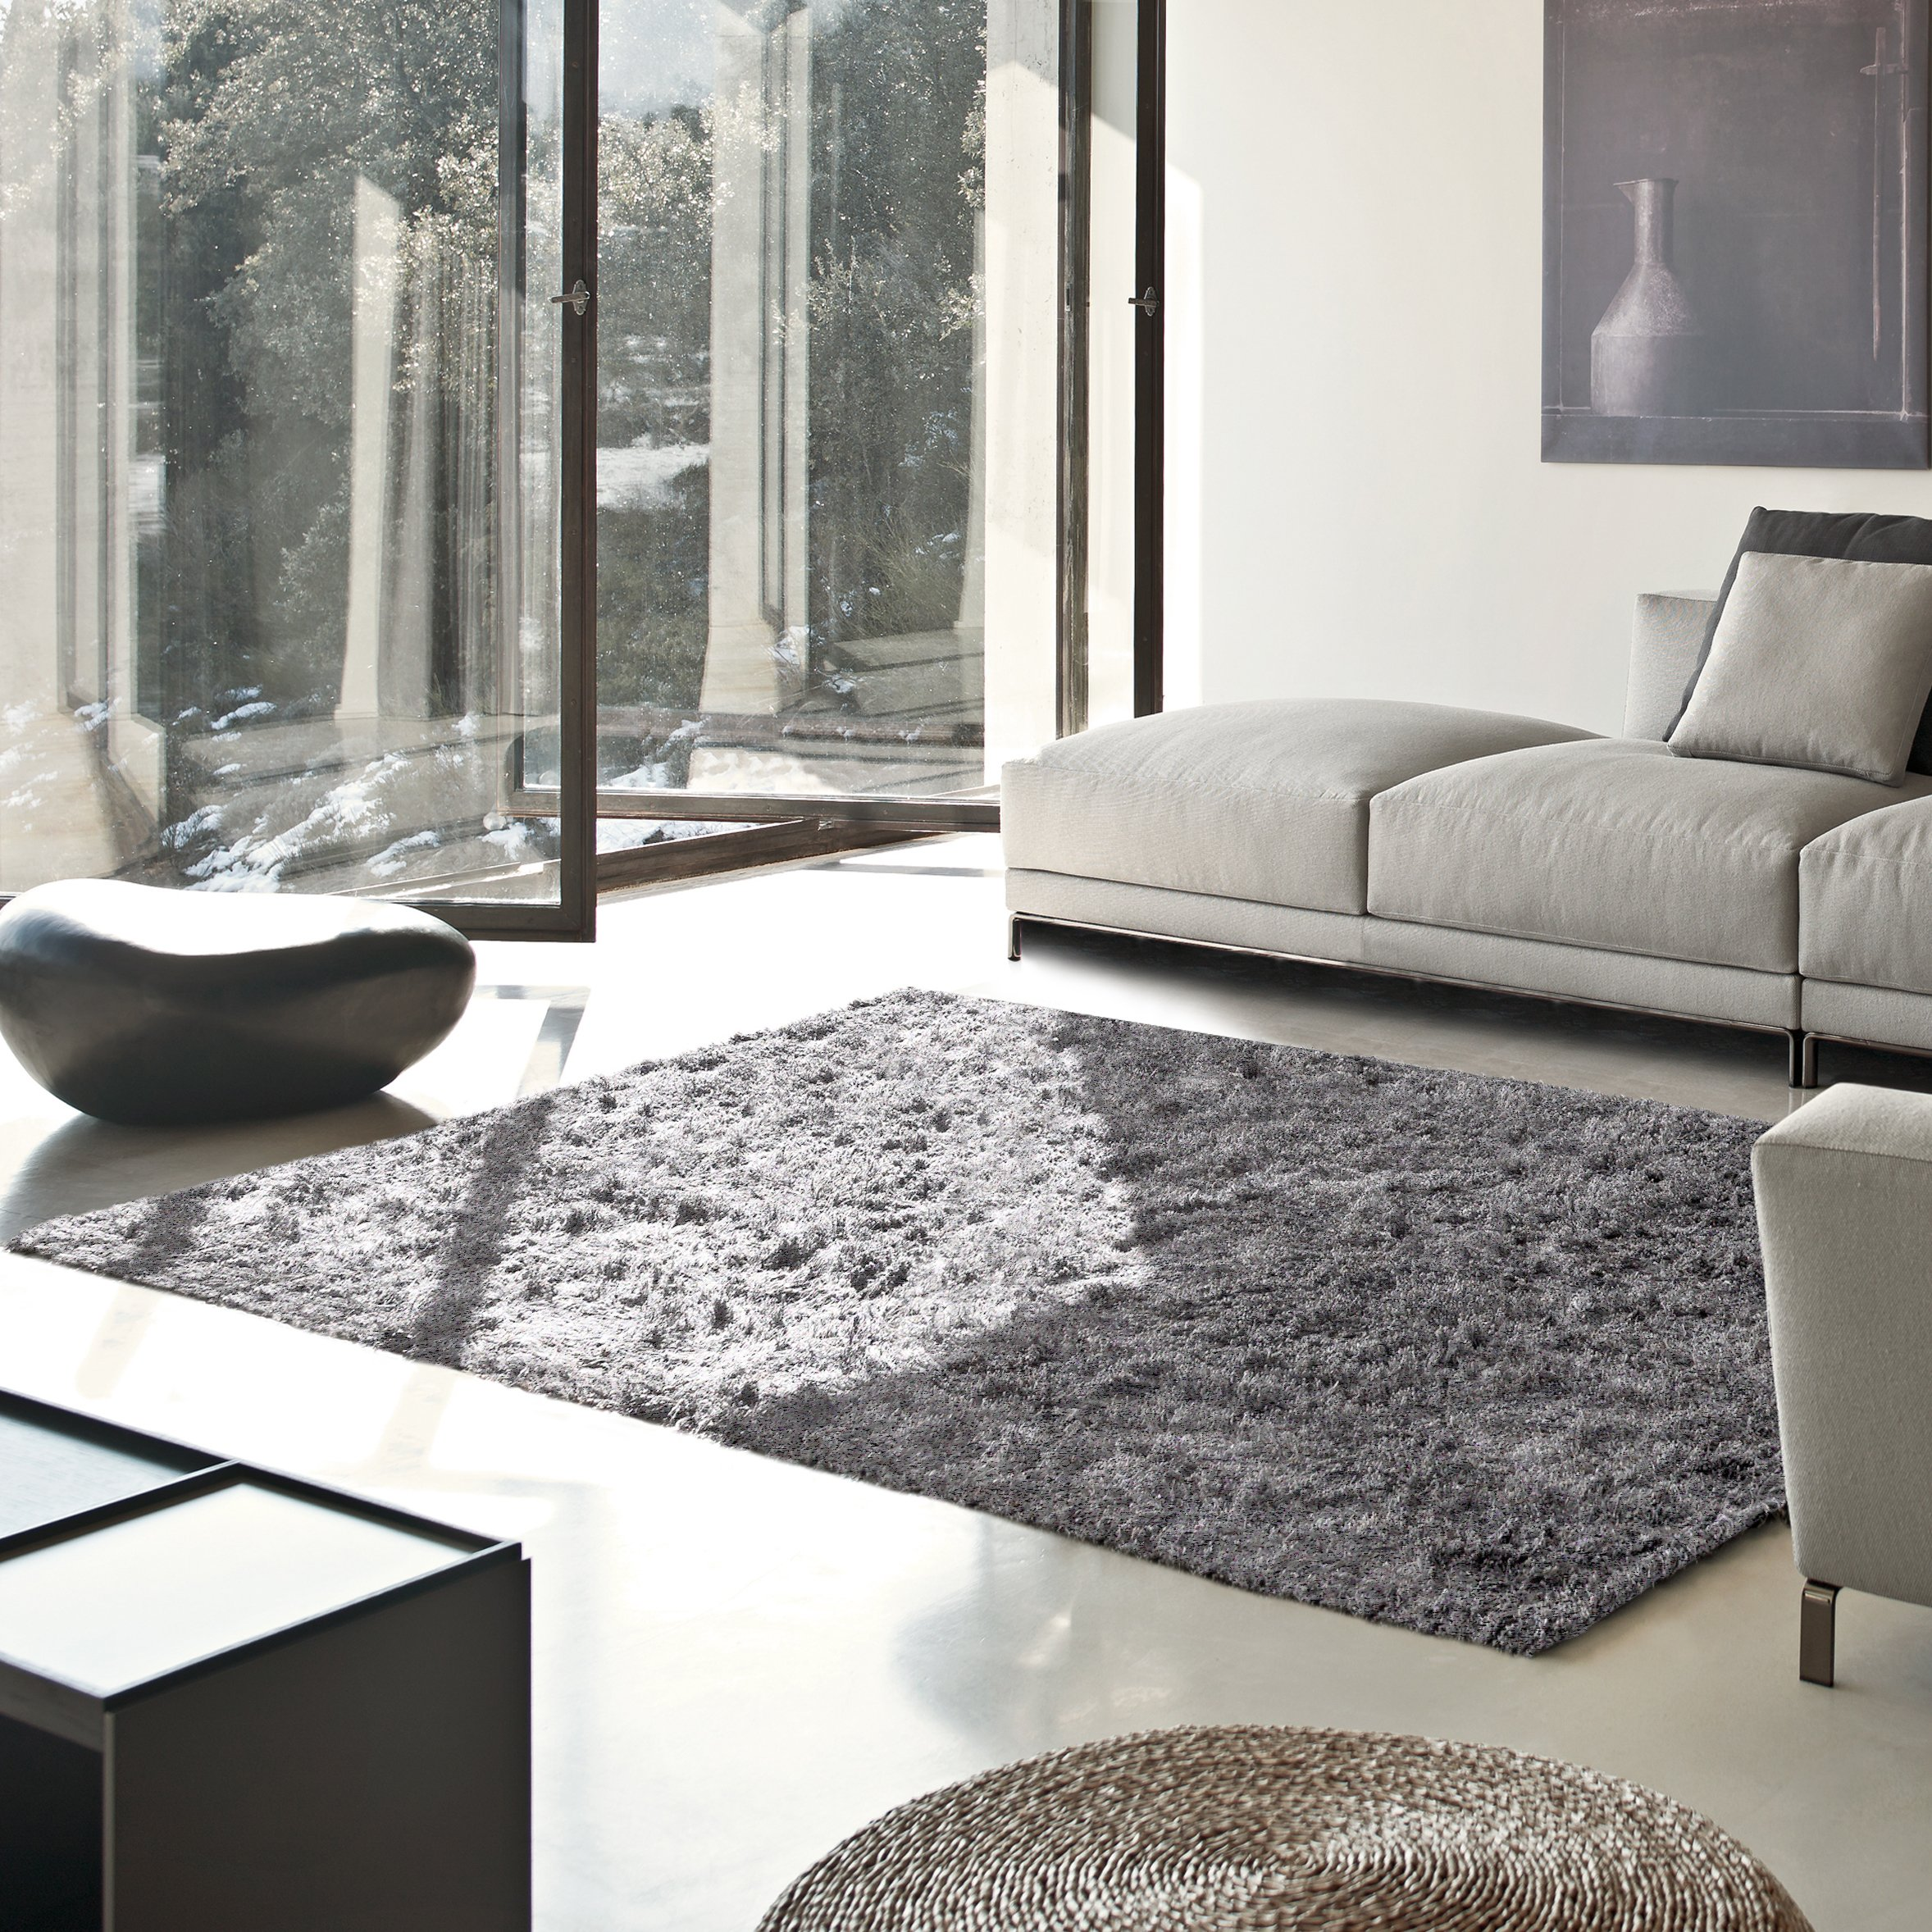 Superior Elegant Shag Rug, Plush and Cozy Hand Tufted Area Rugs, Chic and Contemporary Eyelash Shag Rug with Cotton Backing - 5' x 8' Rug, Grey by Superior (Image #1)